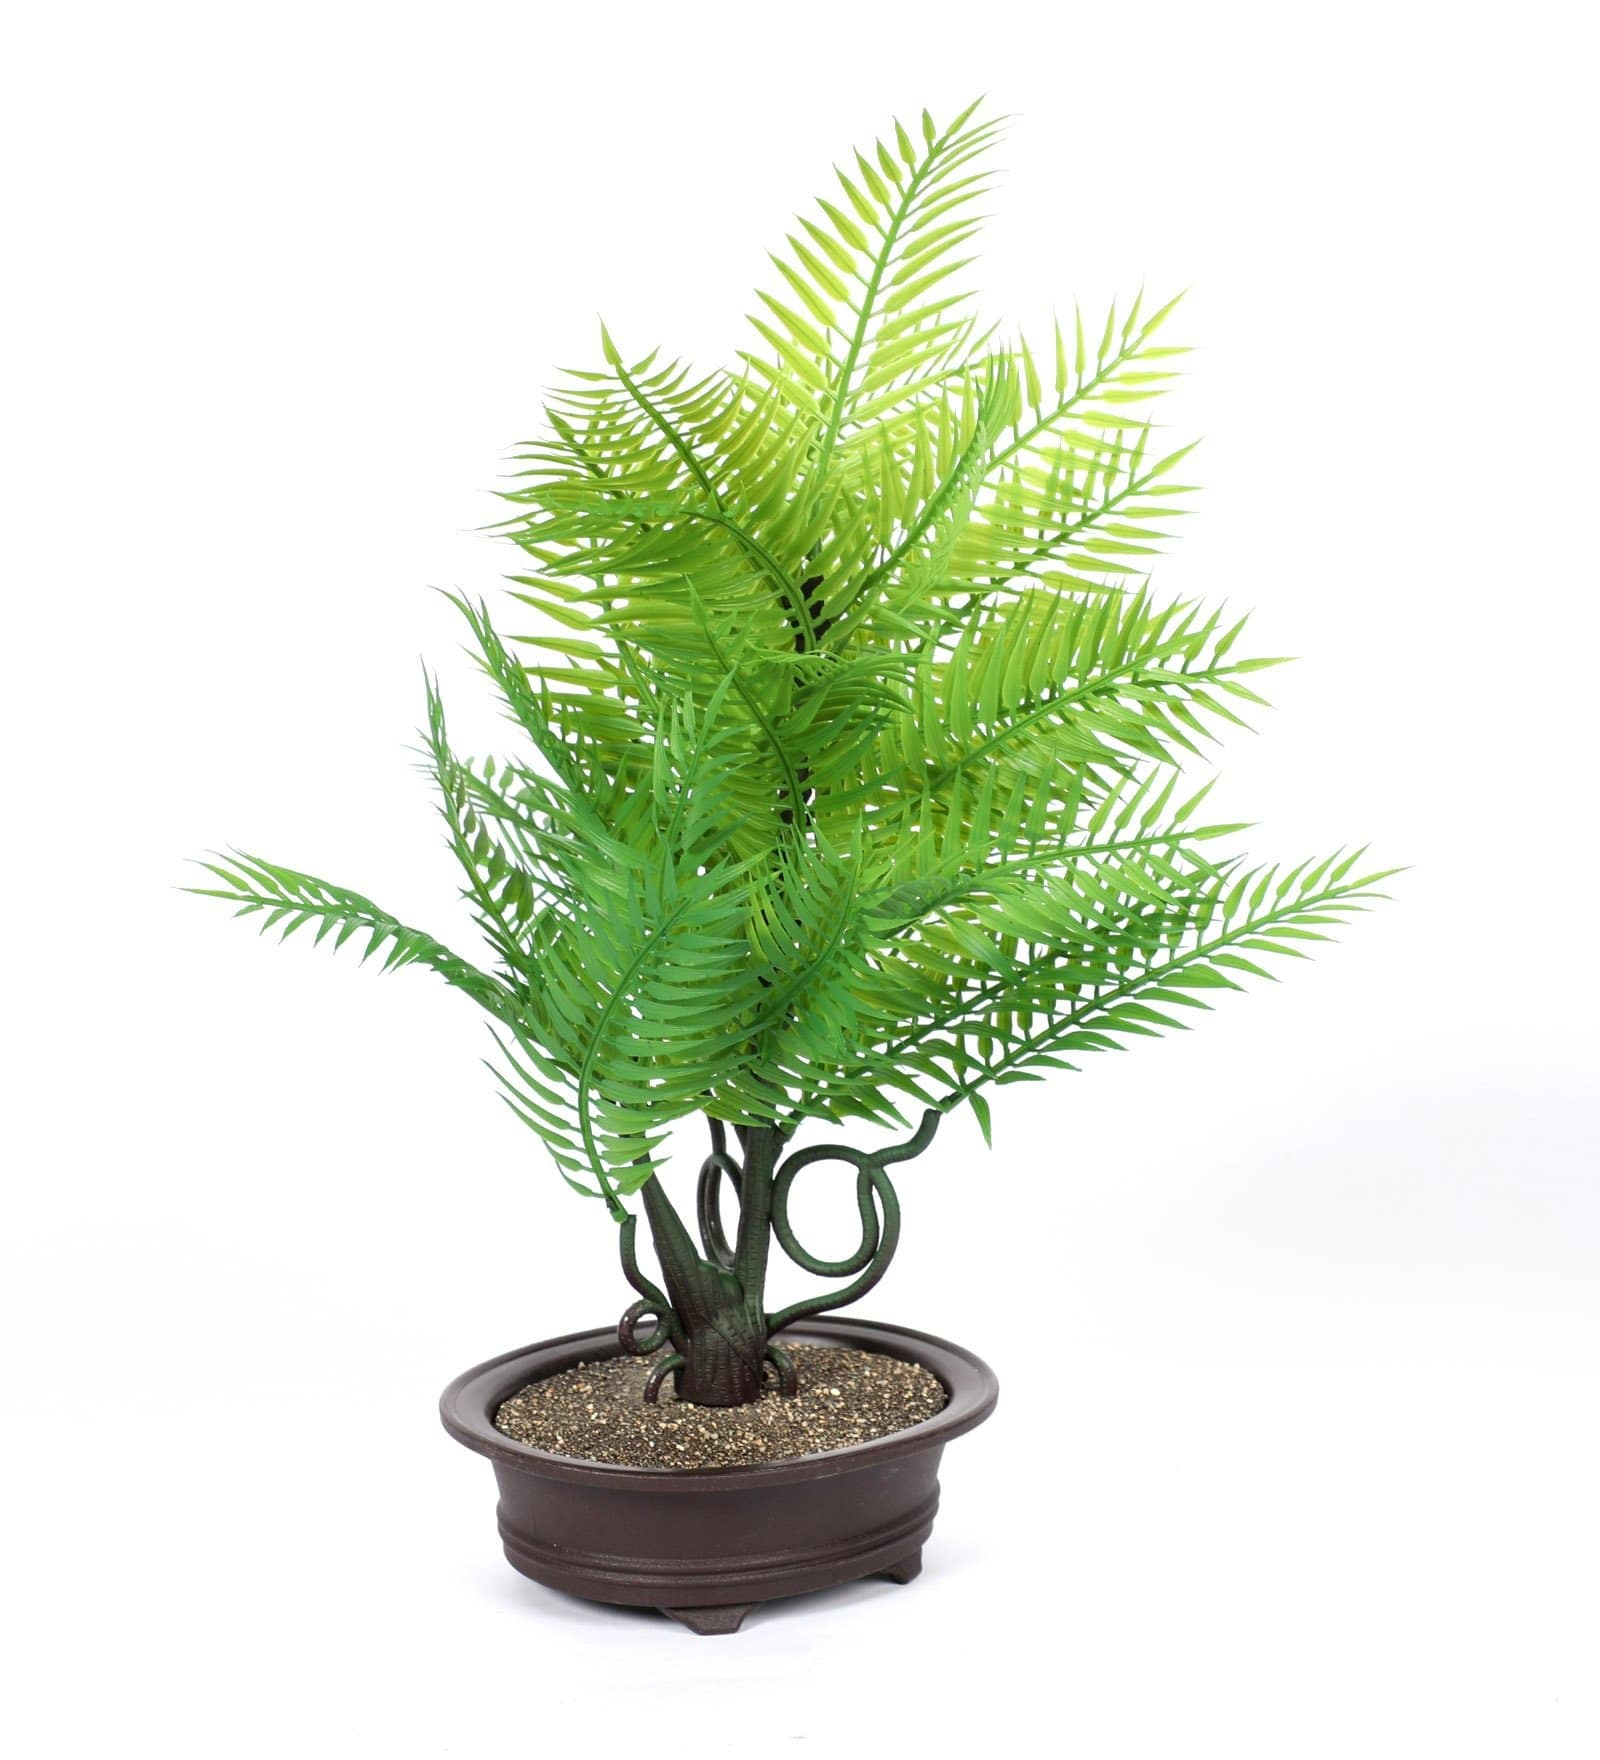 PolliNation Artificial Yellow Palm Bonsai with Brown Fiber Pot for Gifting (Pack of 1, 40 cm) - Artificial Flowers & Plants - PolliNation